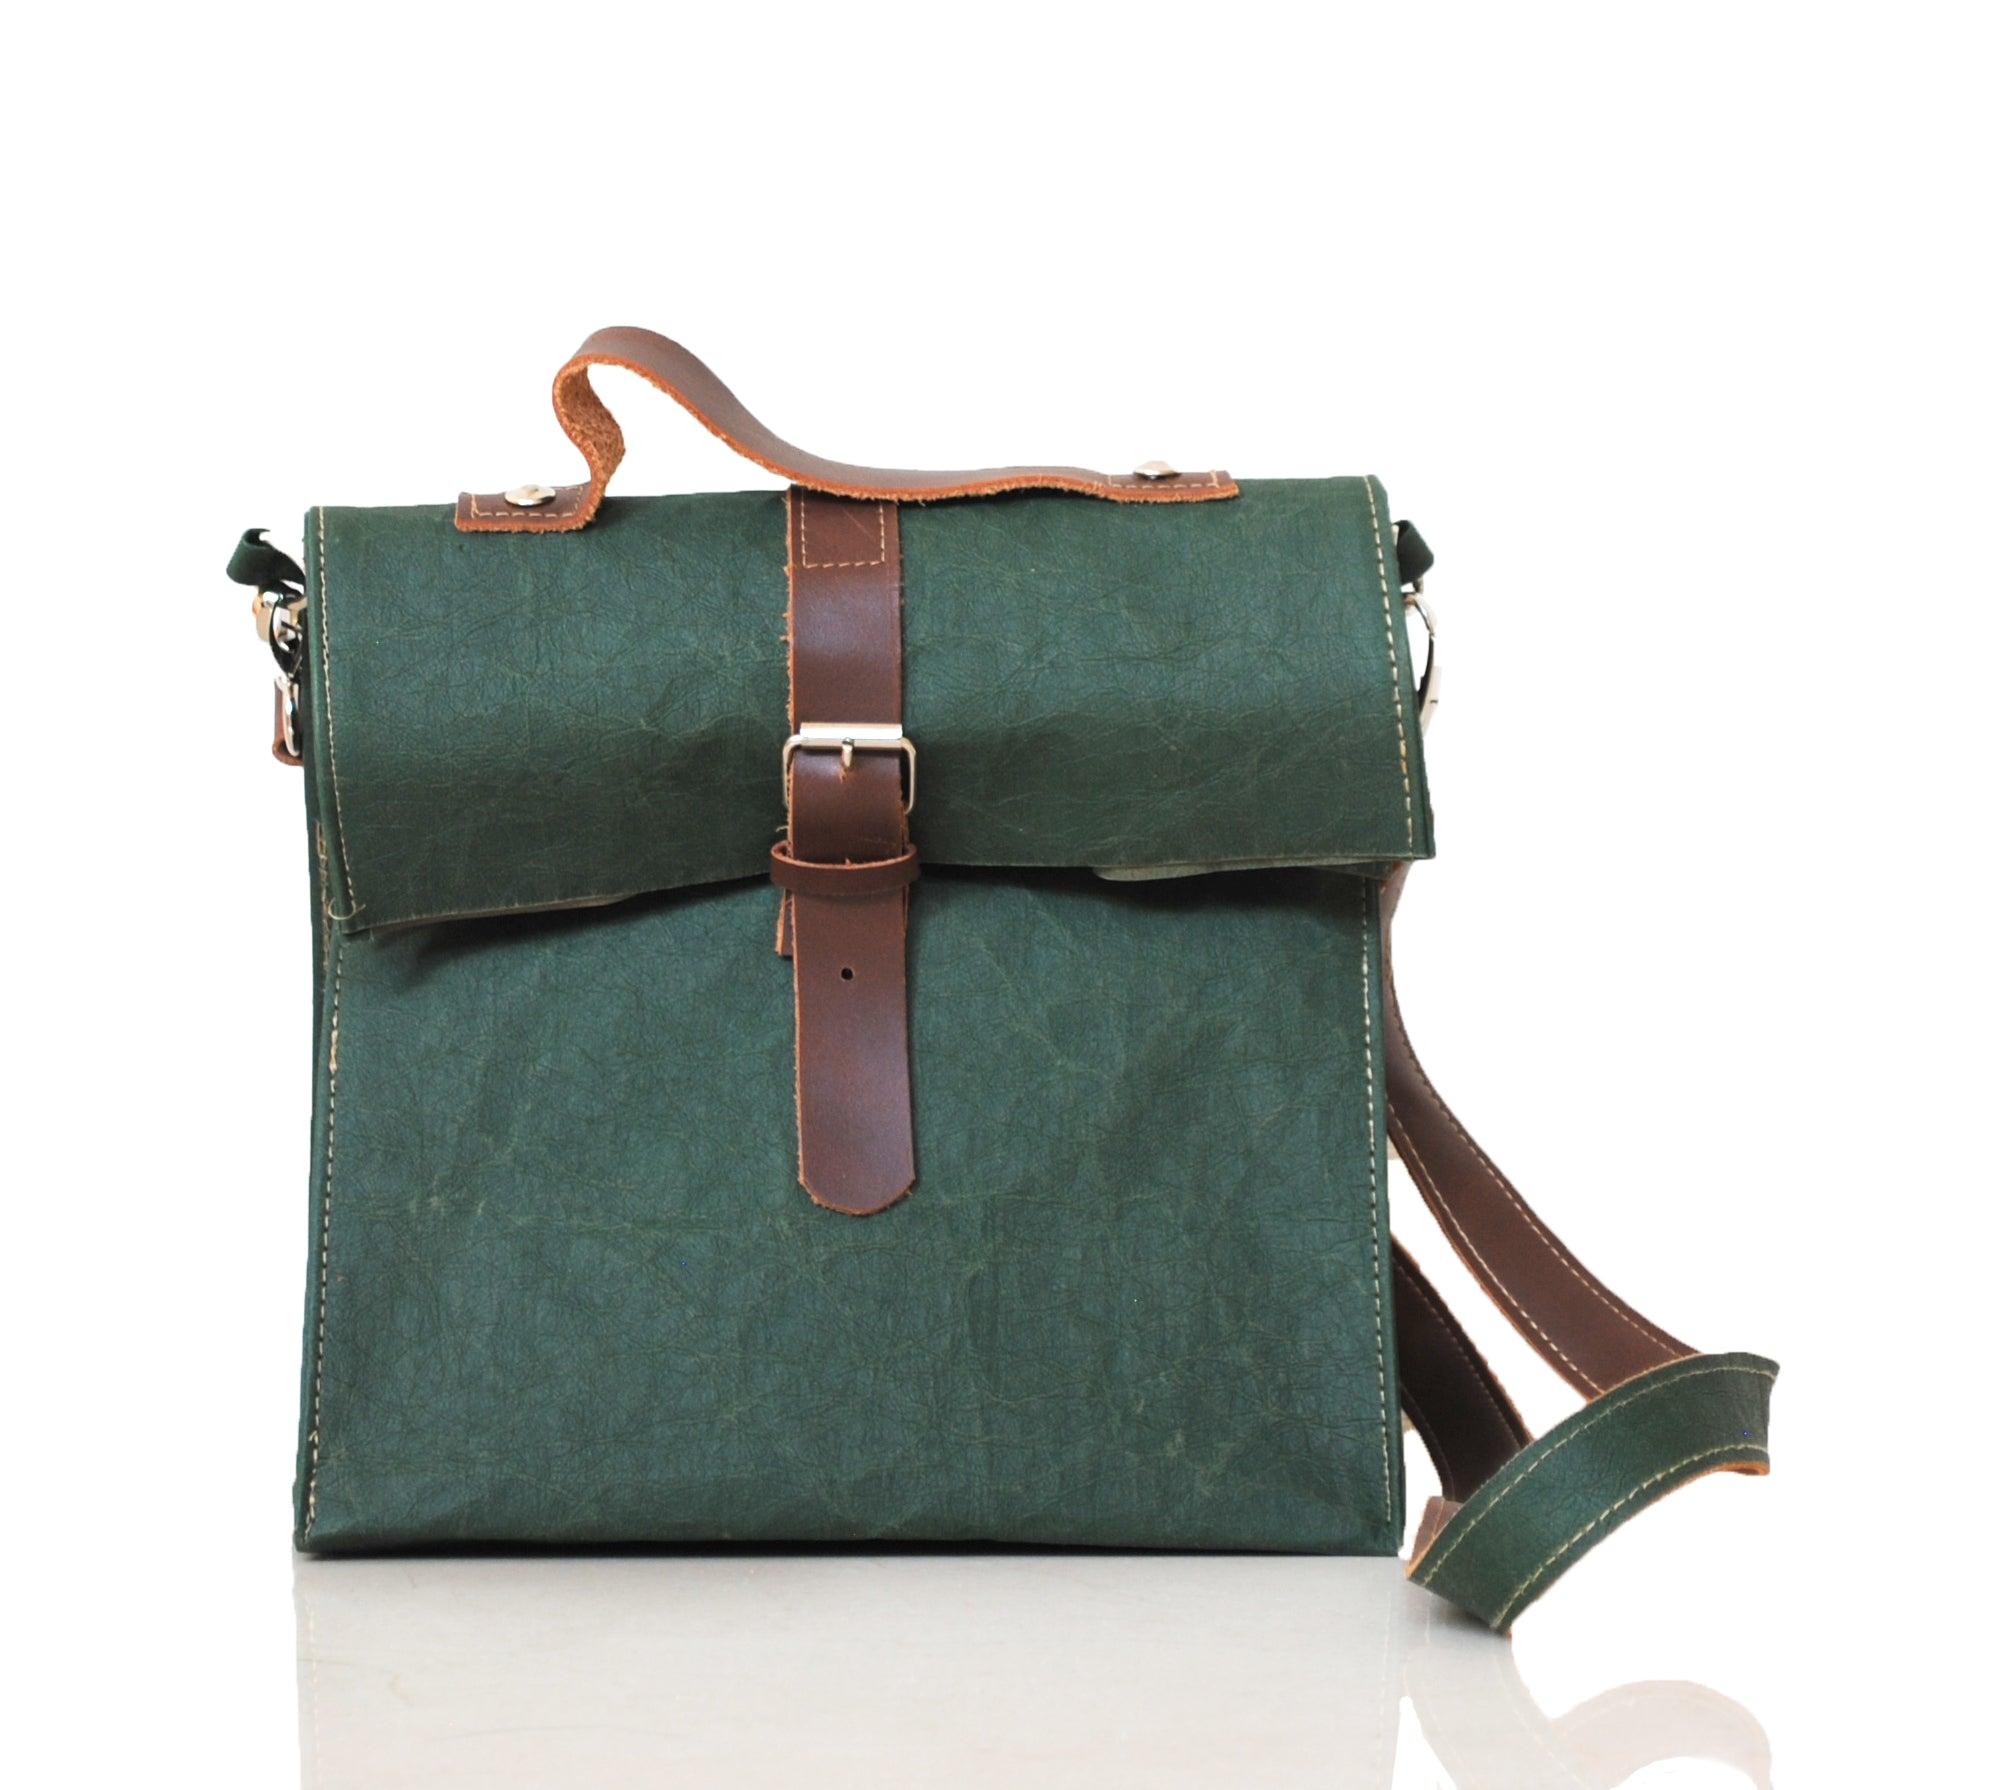 Lunch bag Roble Verde con asa